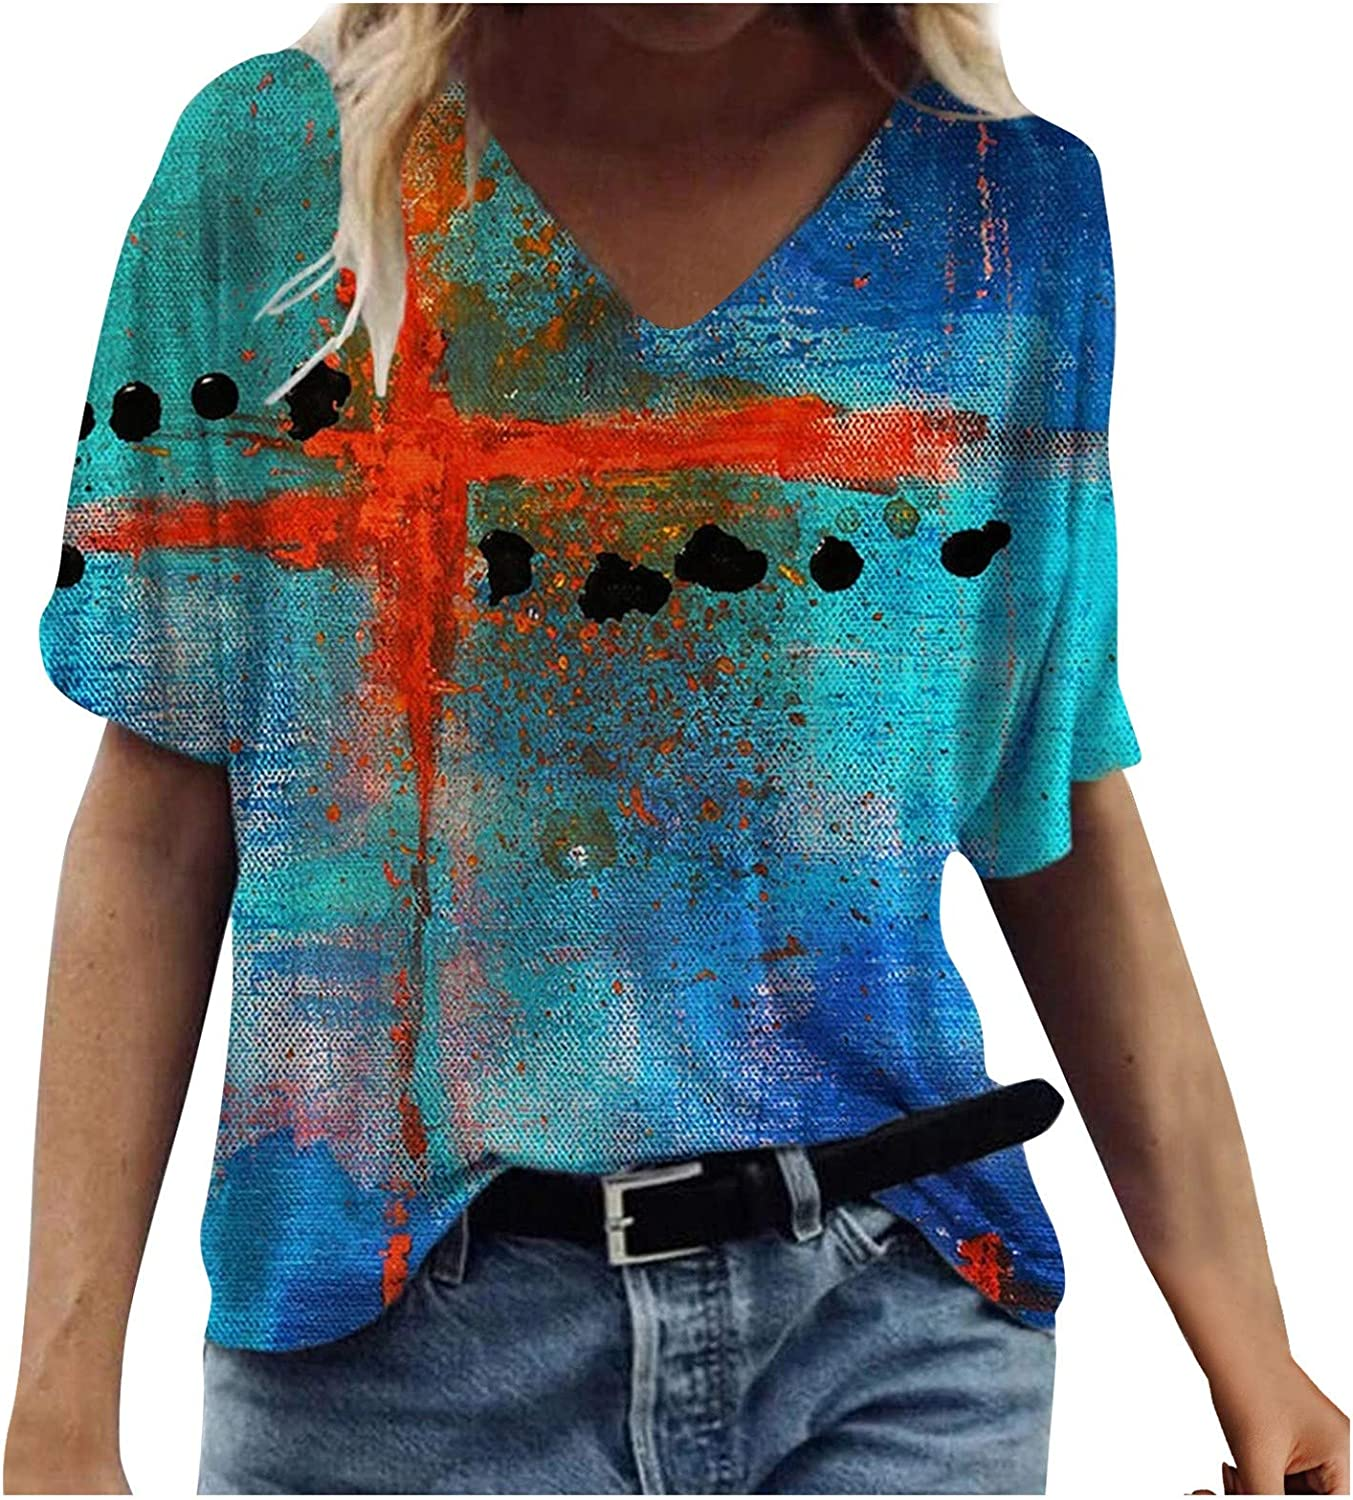 AODONG Funny Tees for Women, Summer Shirts for Women Daisy Print V Neck T-Shirt Fashion Tees Causal Loose Tunic Blouses